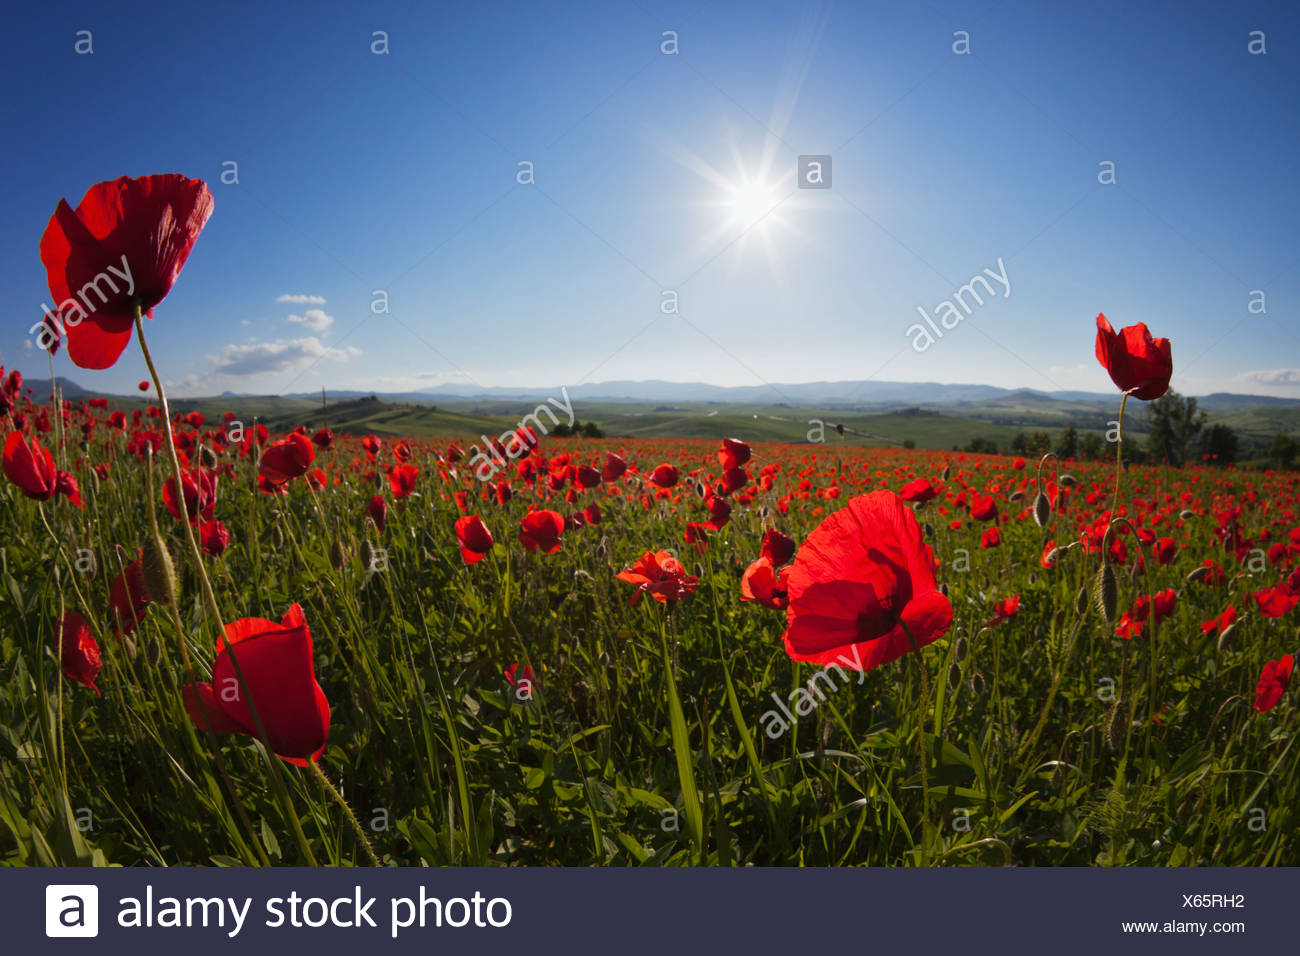 Italy, Tuscany, Crete, View of red poppy field at sunrise - Stock Image